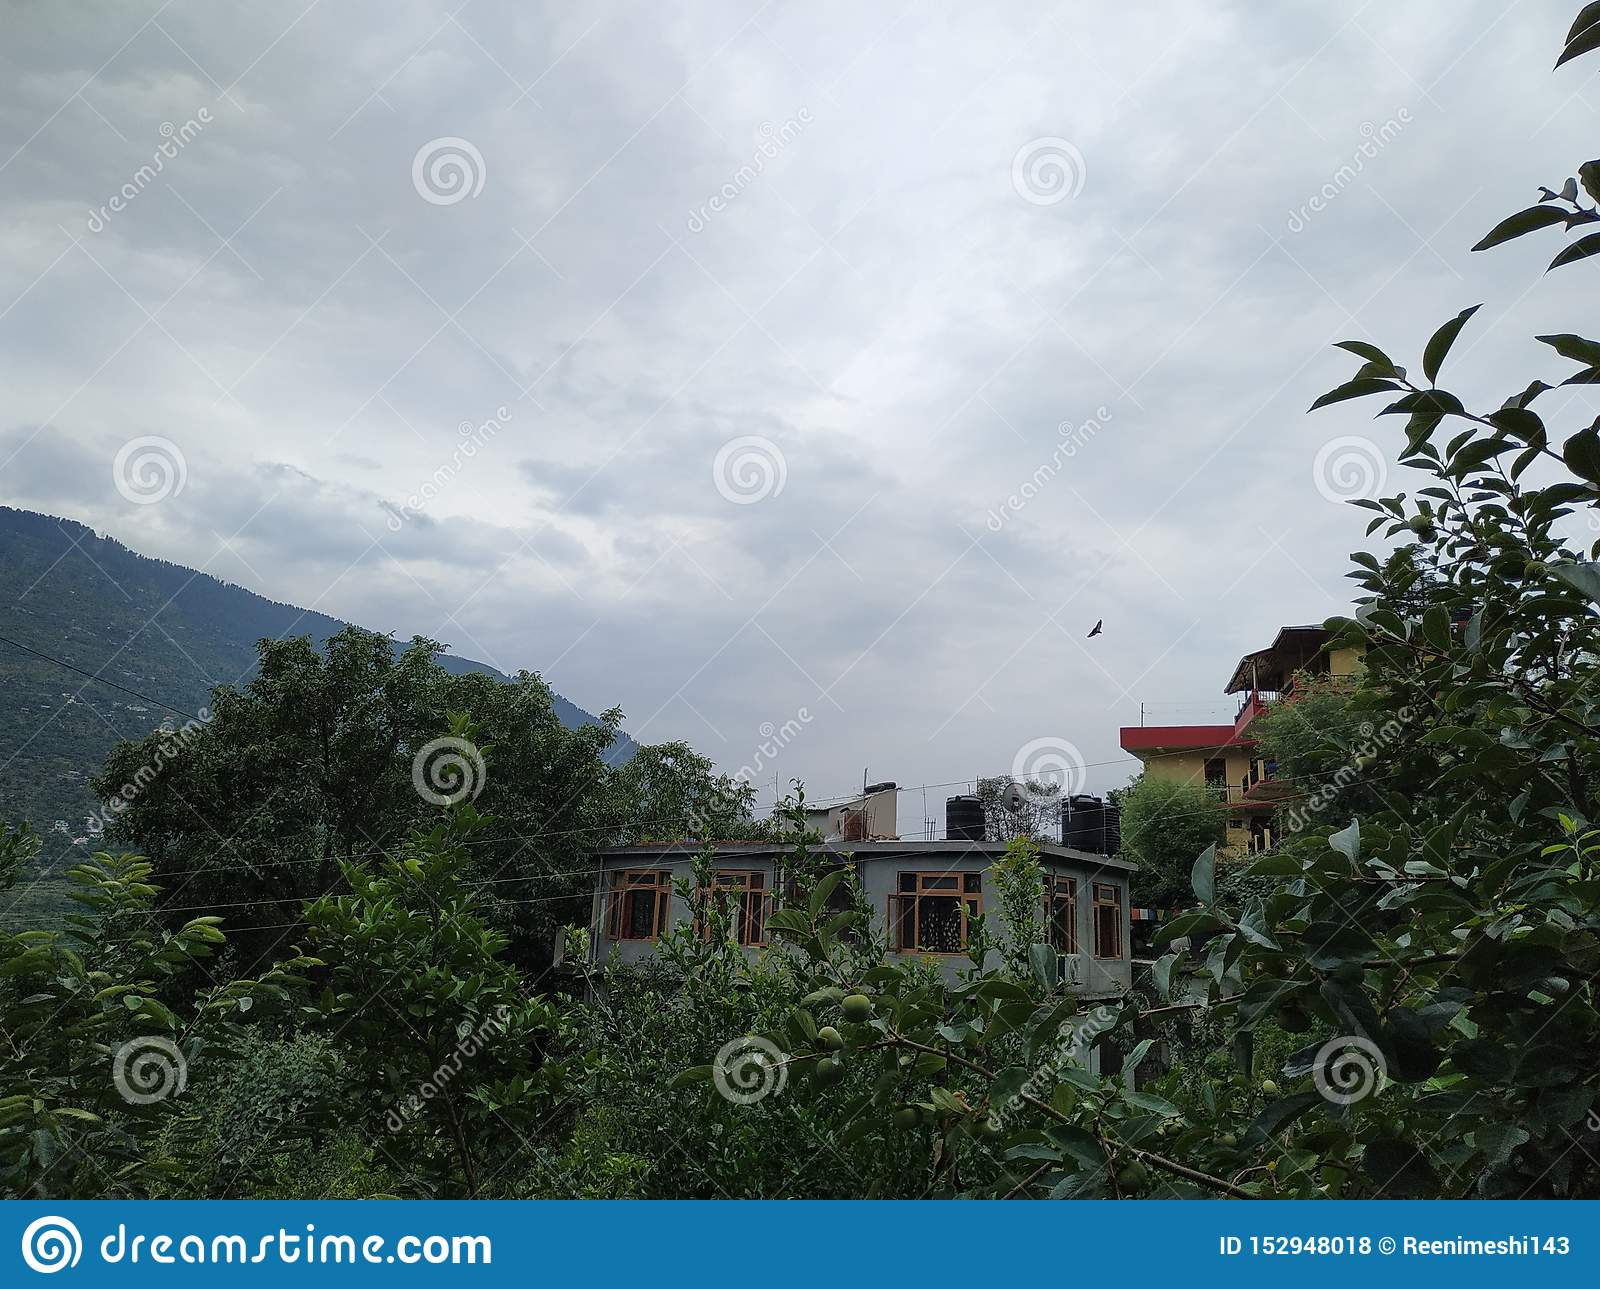 Hills, cloudy weather and beautifull small village`s houses